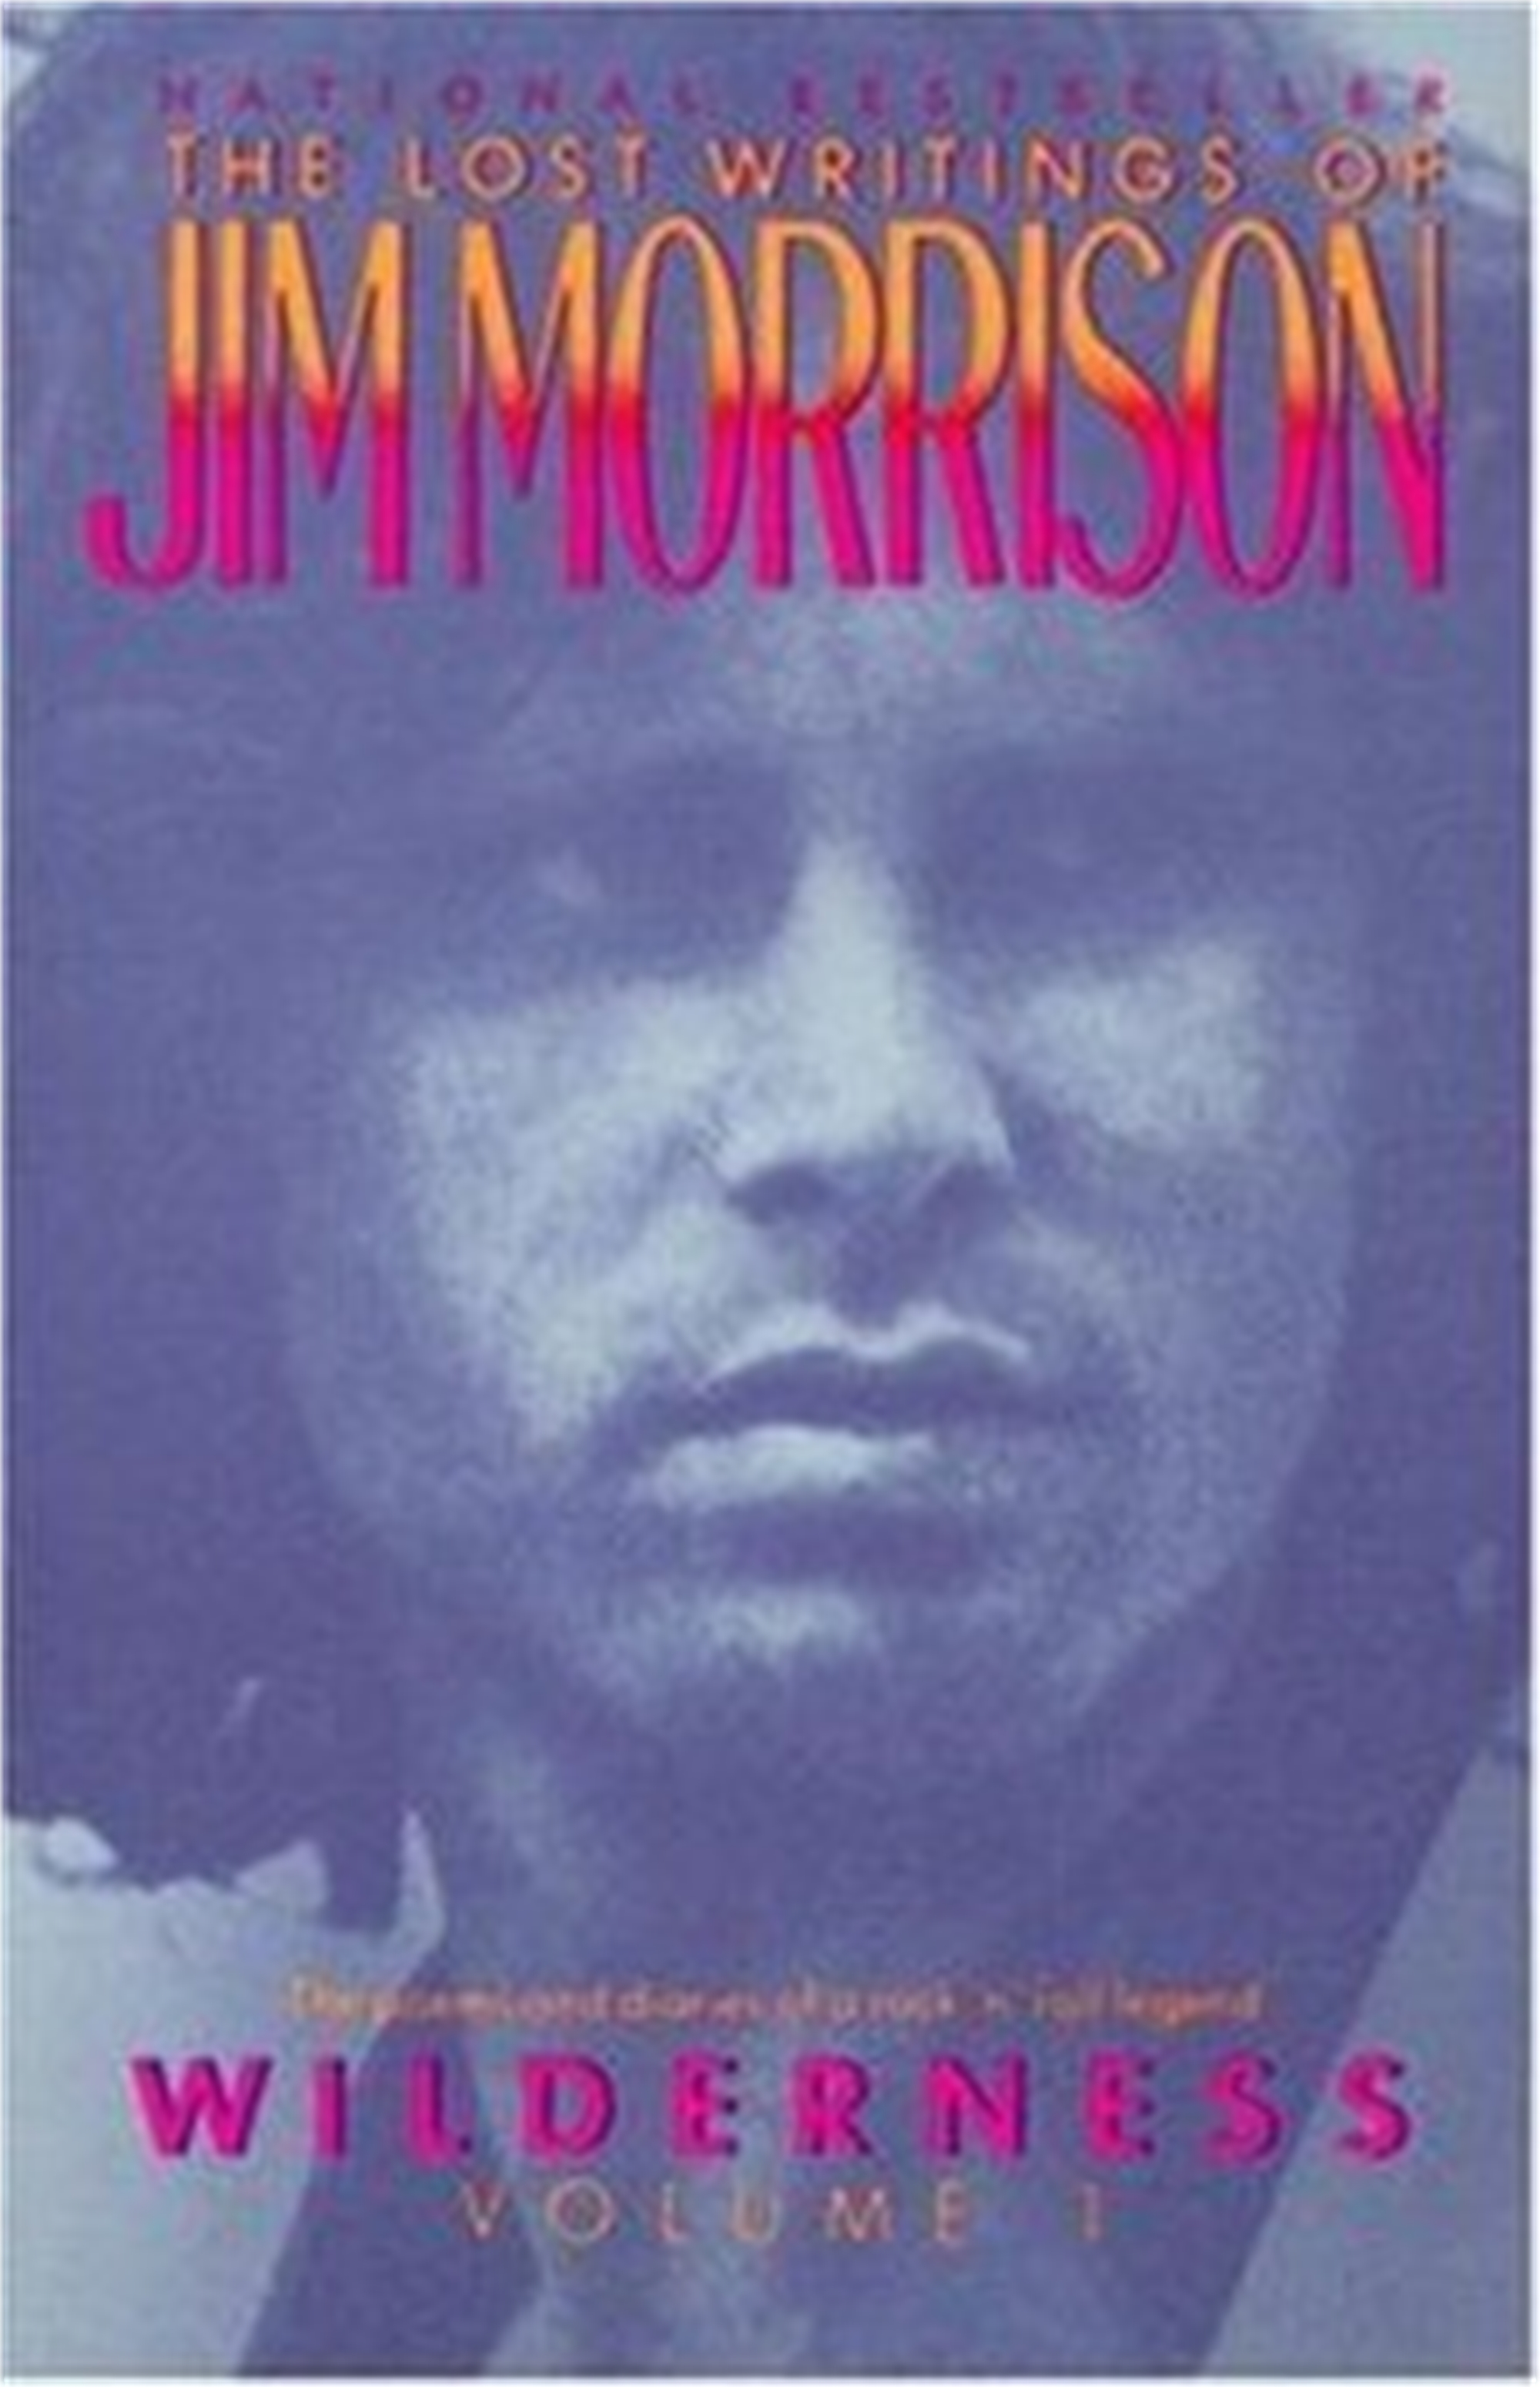 The Lost Writings of Jim Morrison - Wildnerness Vol I by Frank Lisciandro (McMinnville, OR)